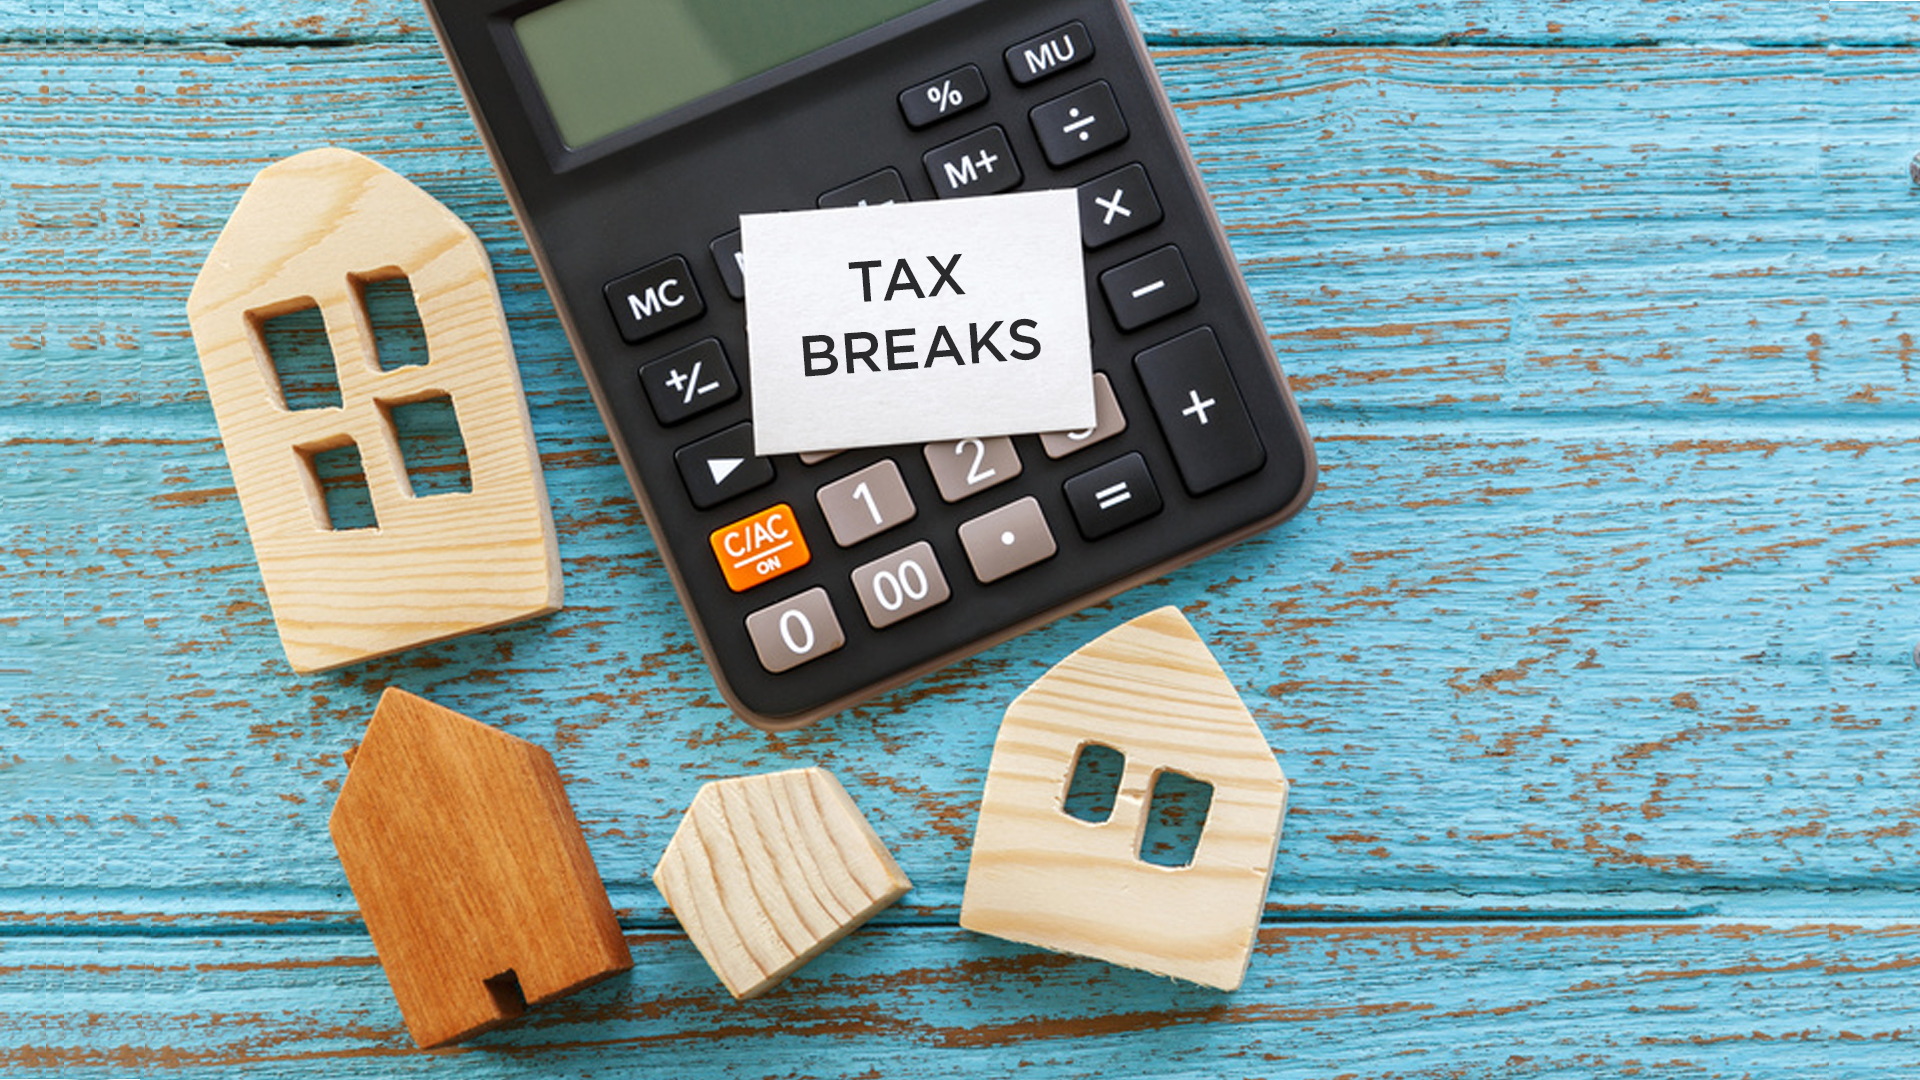 STIMULATE THE ECONOMY THROUGH TAX BREAKS FOR FIRST-TIME BUYERS